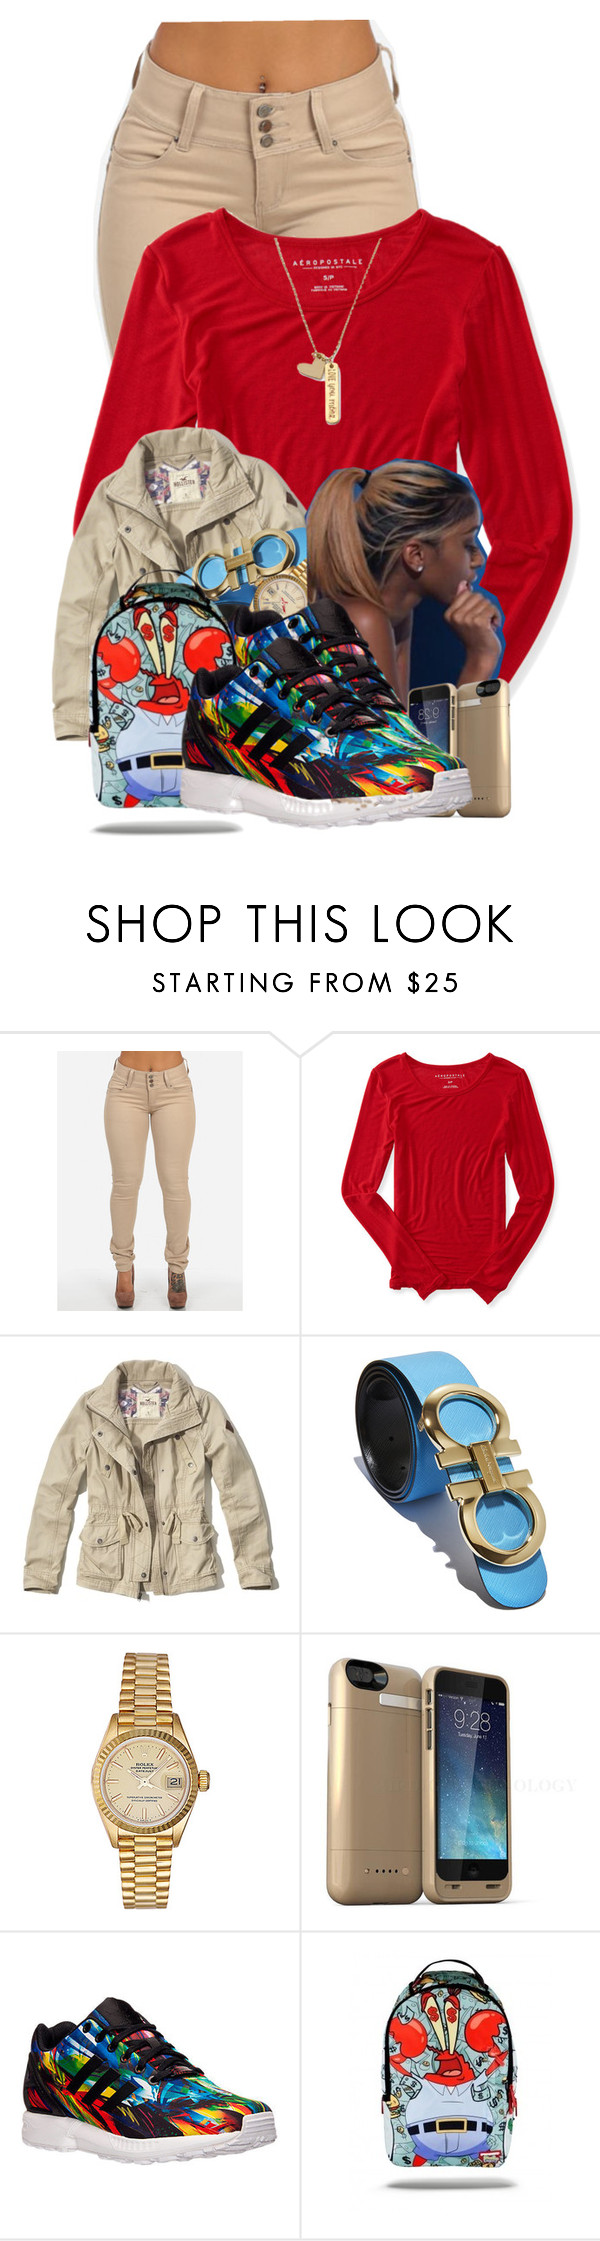 """""""Sauce """" by aniahrhichkhidd ❤ liked on Polyvore featuring Aéropostale, Hollister Co., Salvatore Ferragamo, Rolex, adidas and Forever 21"""